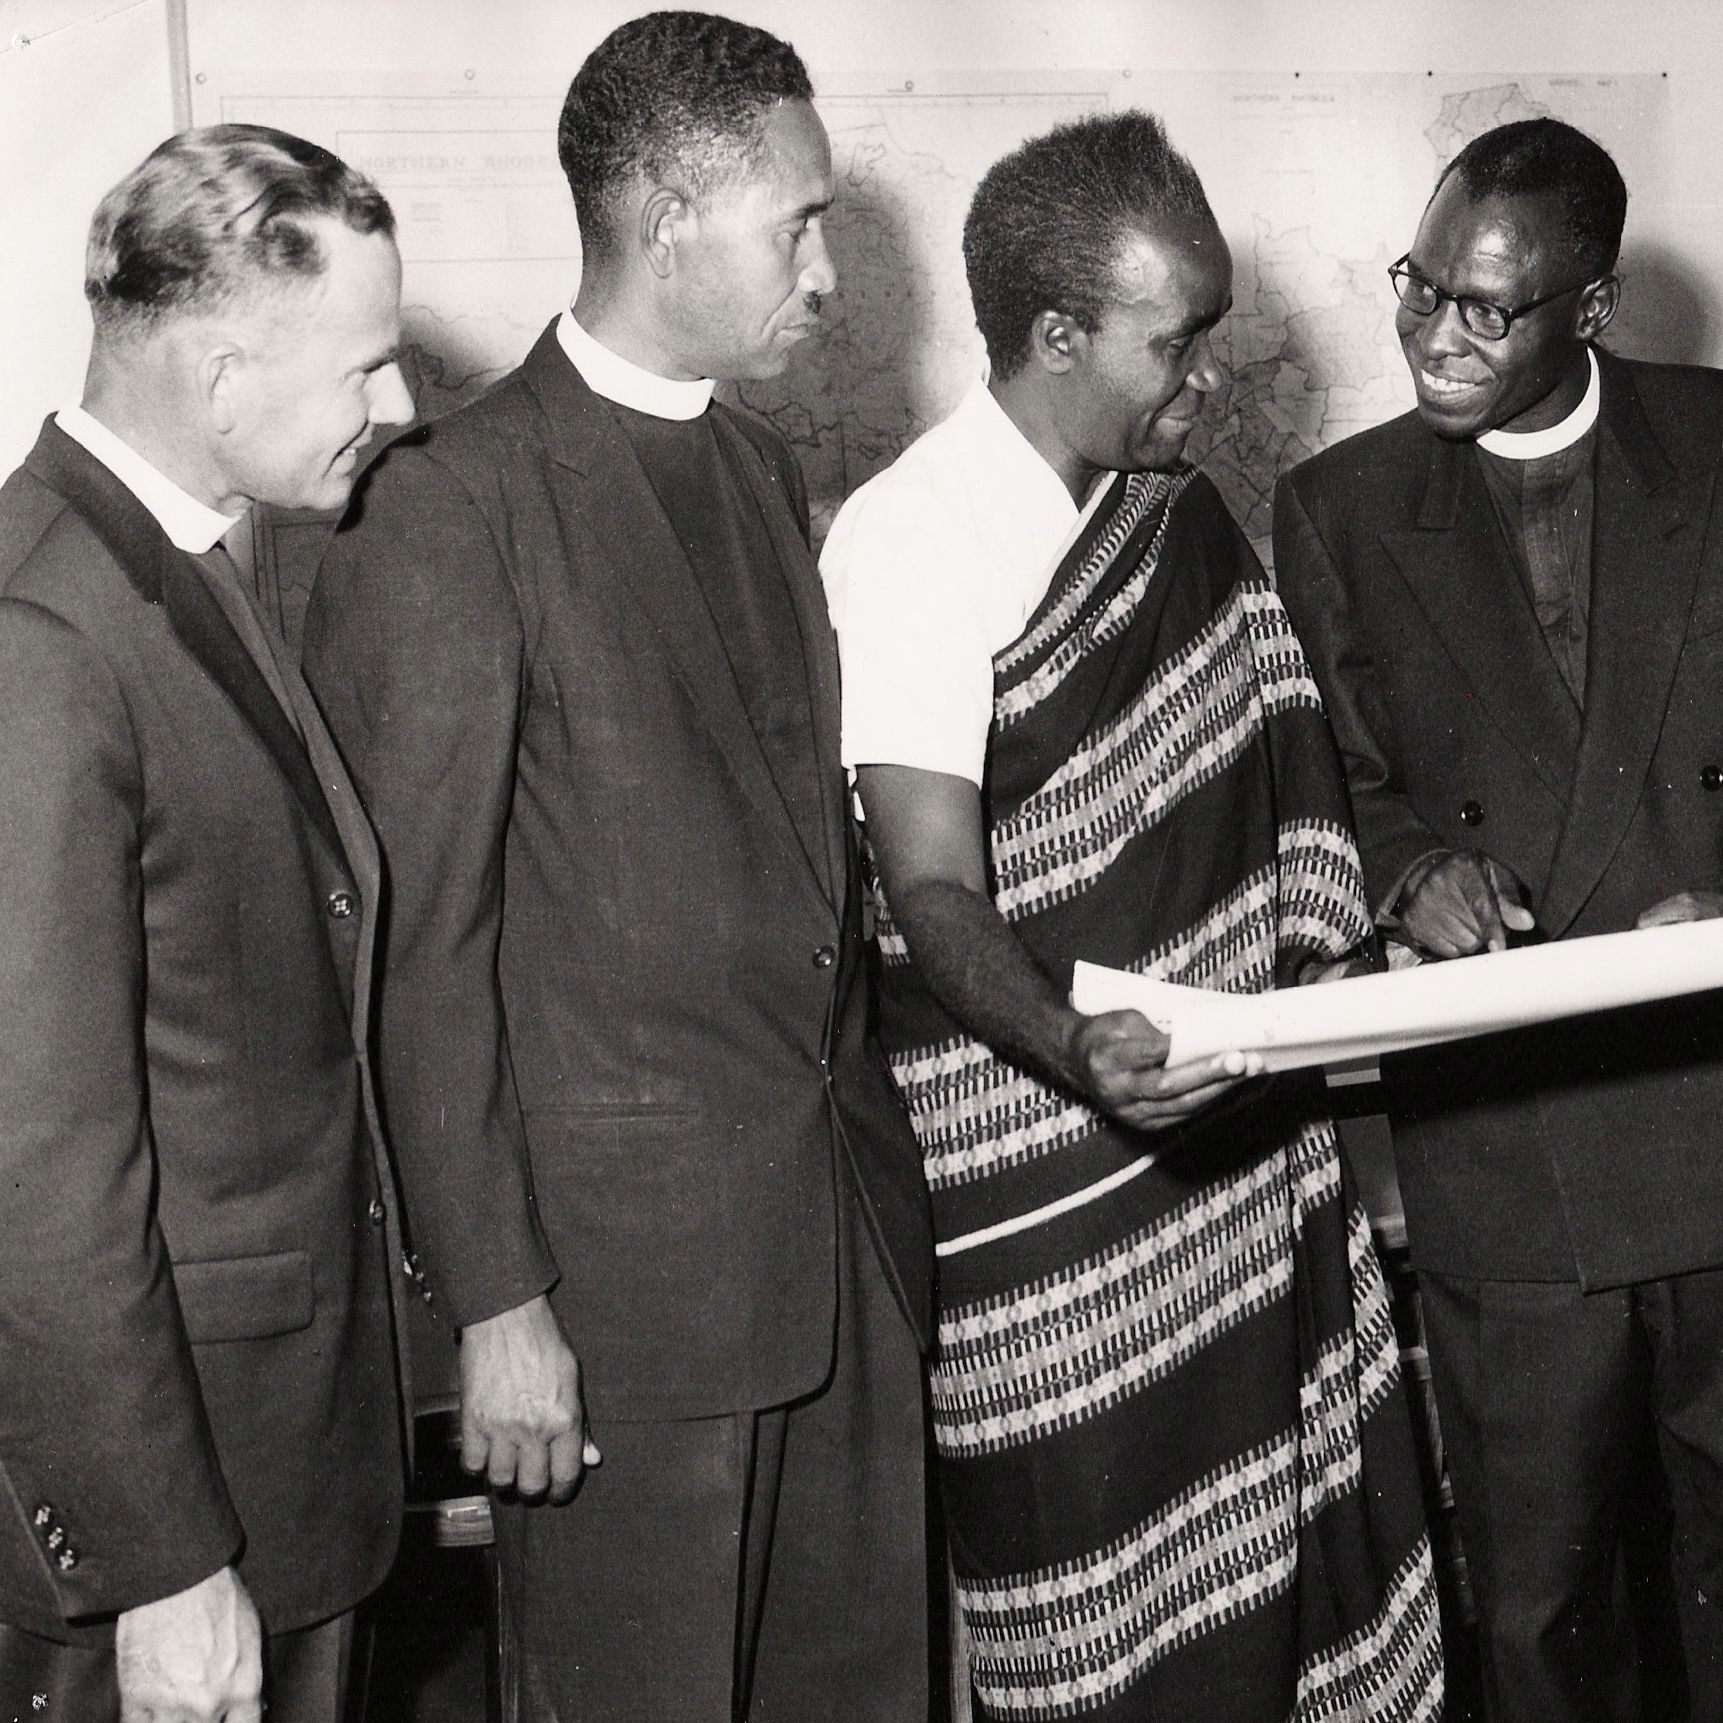 Church leaders -- including then-Brethren in Christ bishop Frank Kipe Sr. (far left) -- congratulate Zambian President Kenneth Kaunda on his inauguration in 1964 (Brethren in Christ Historical Library and Archives)